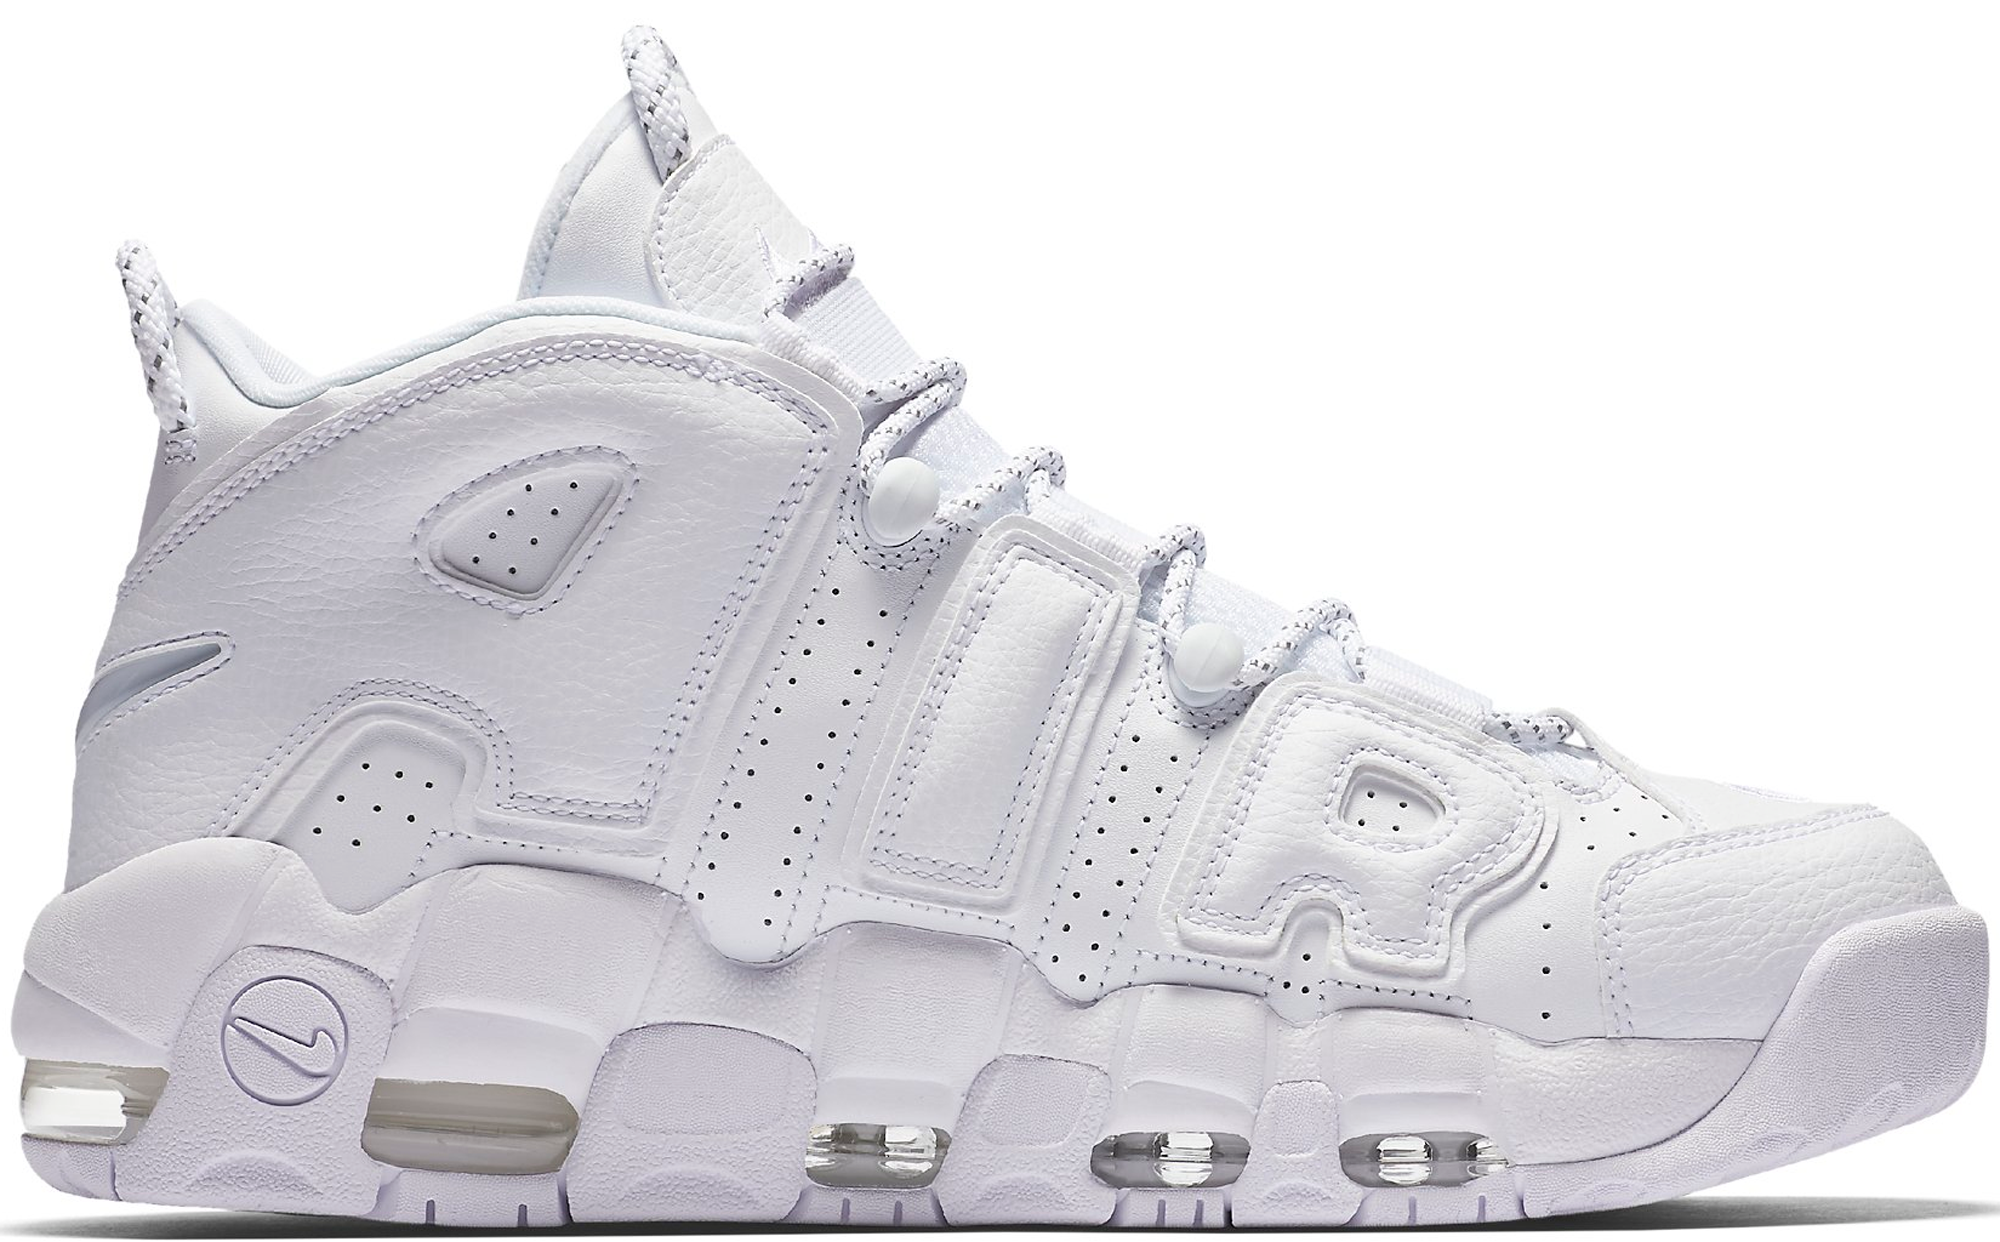 super popular 40a57 e5e71 Nike Air More Uptempo Triple White 2017